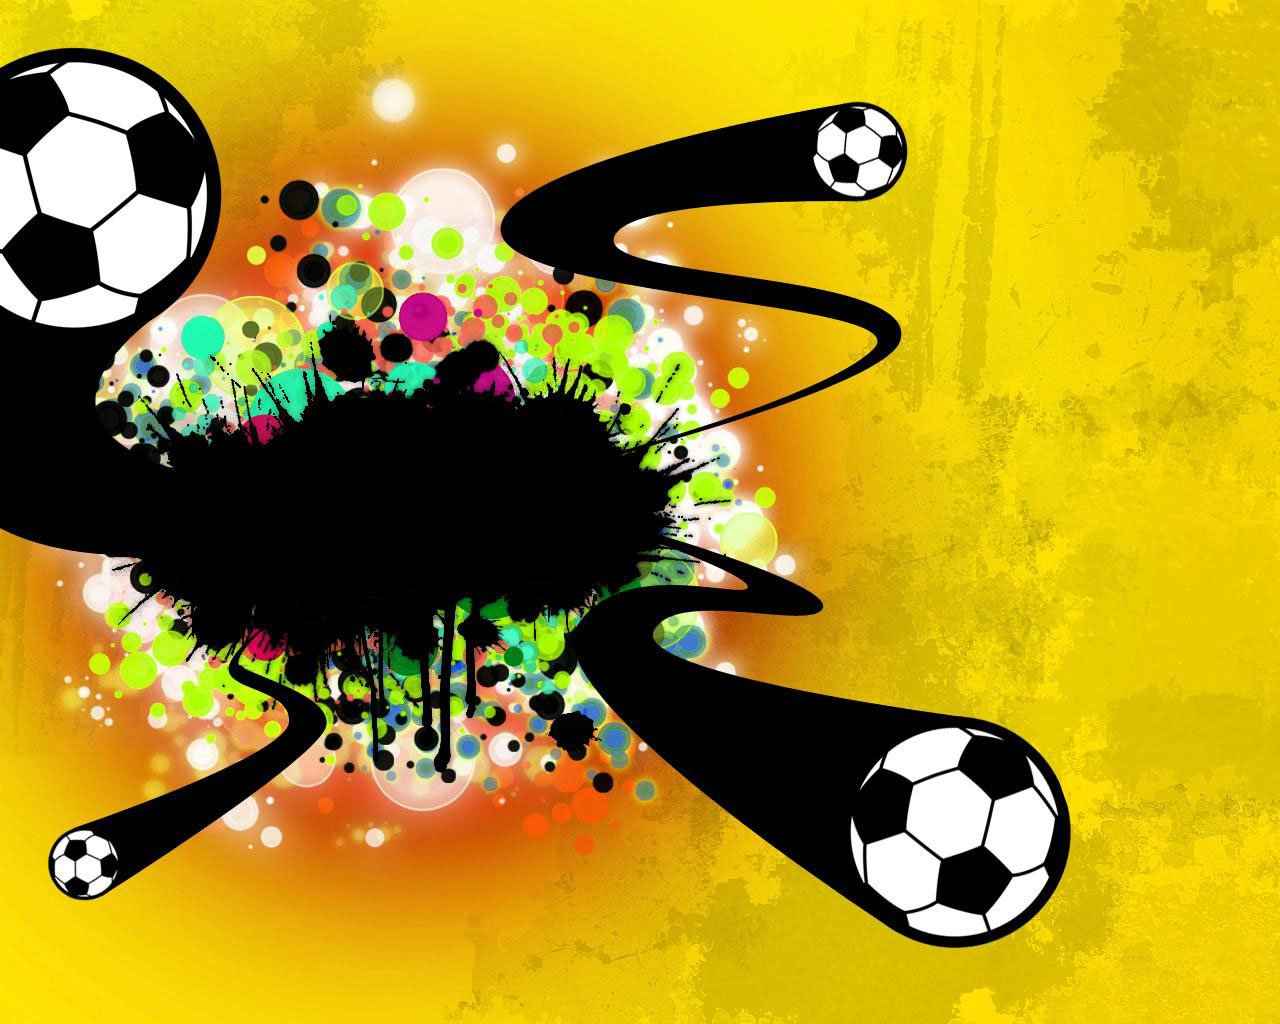 Sports Wallpapers Backgrounds Hd On The App Store: Awesome Soccer Backgrounds